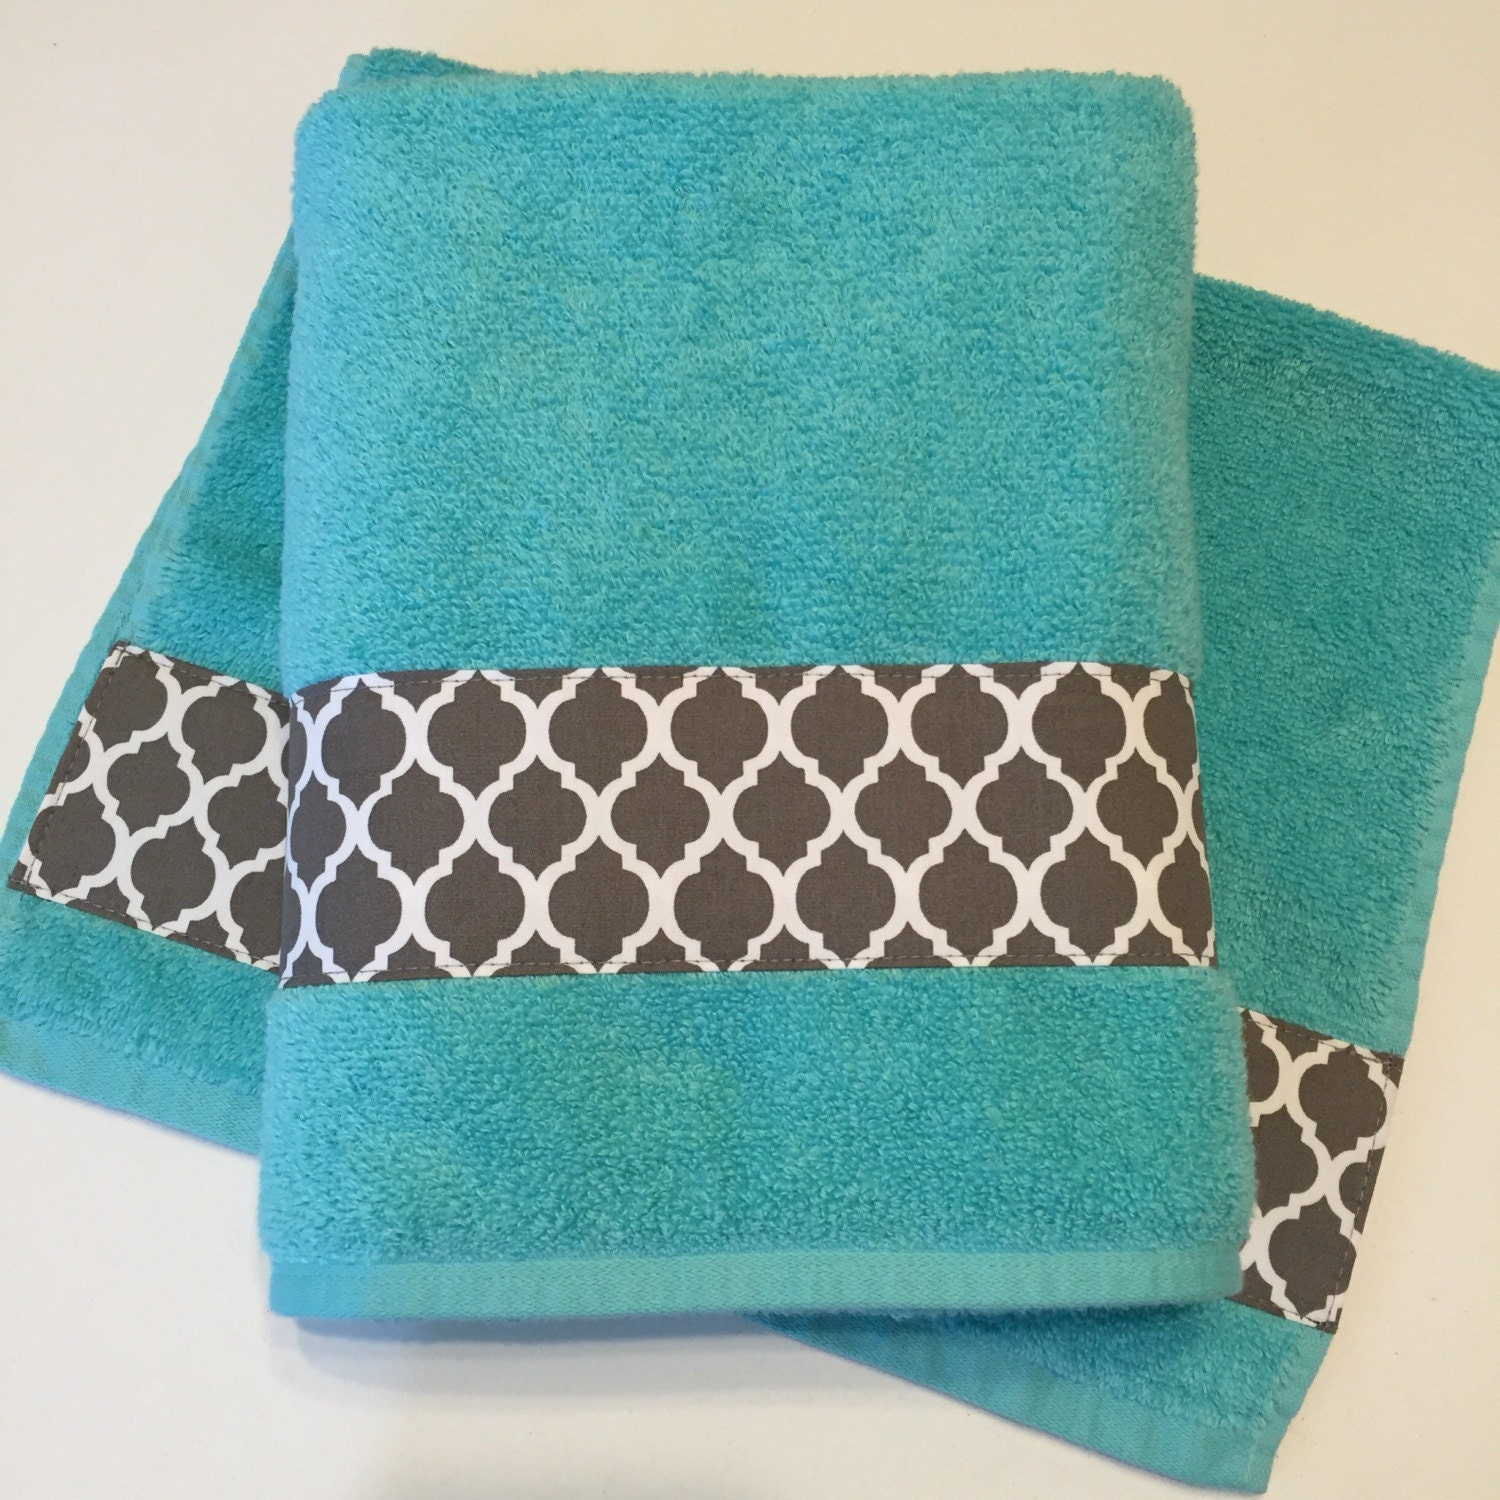 Hand Towels Bathroom: Grey Aqua Bath Towels Bathroom Towel Bath Towel Hand Towel